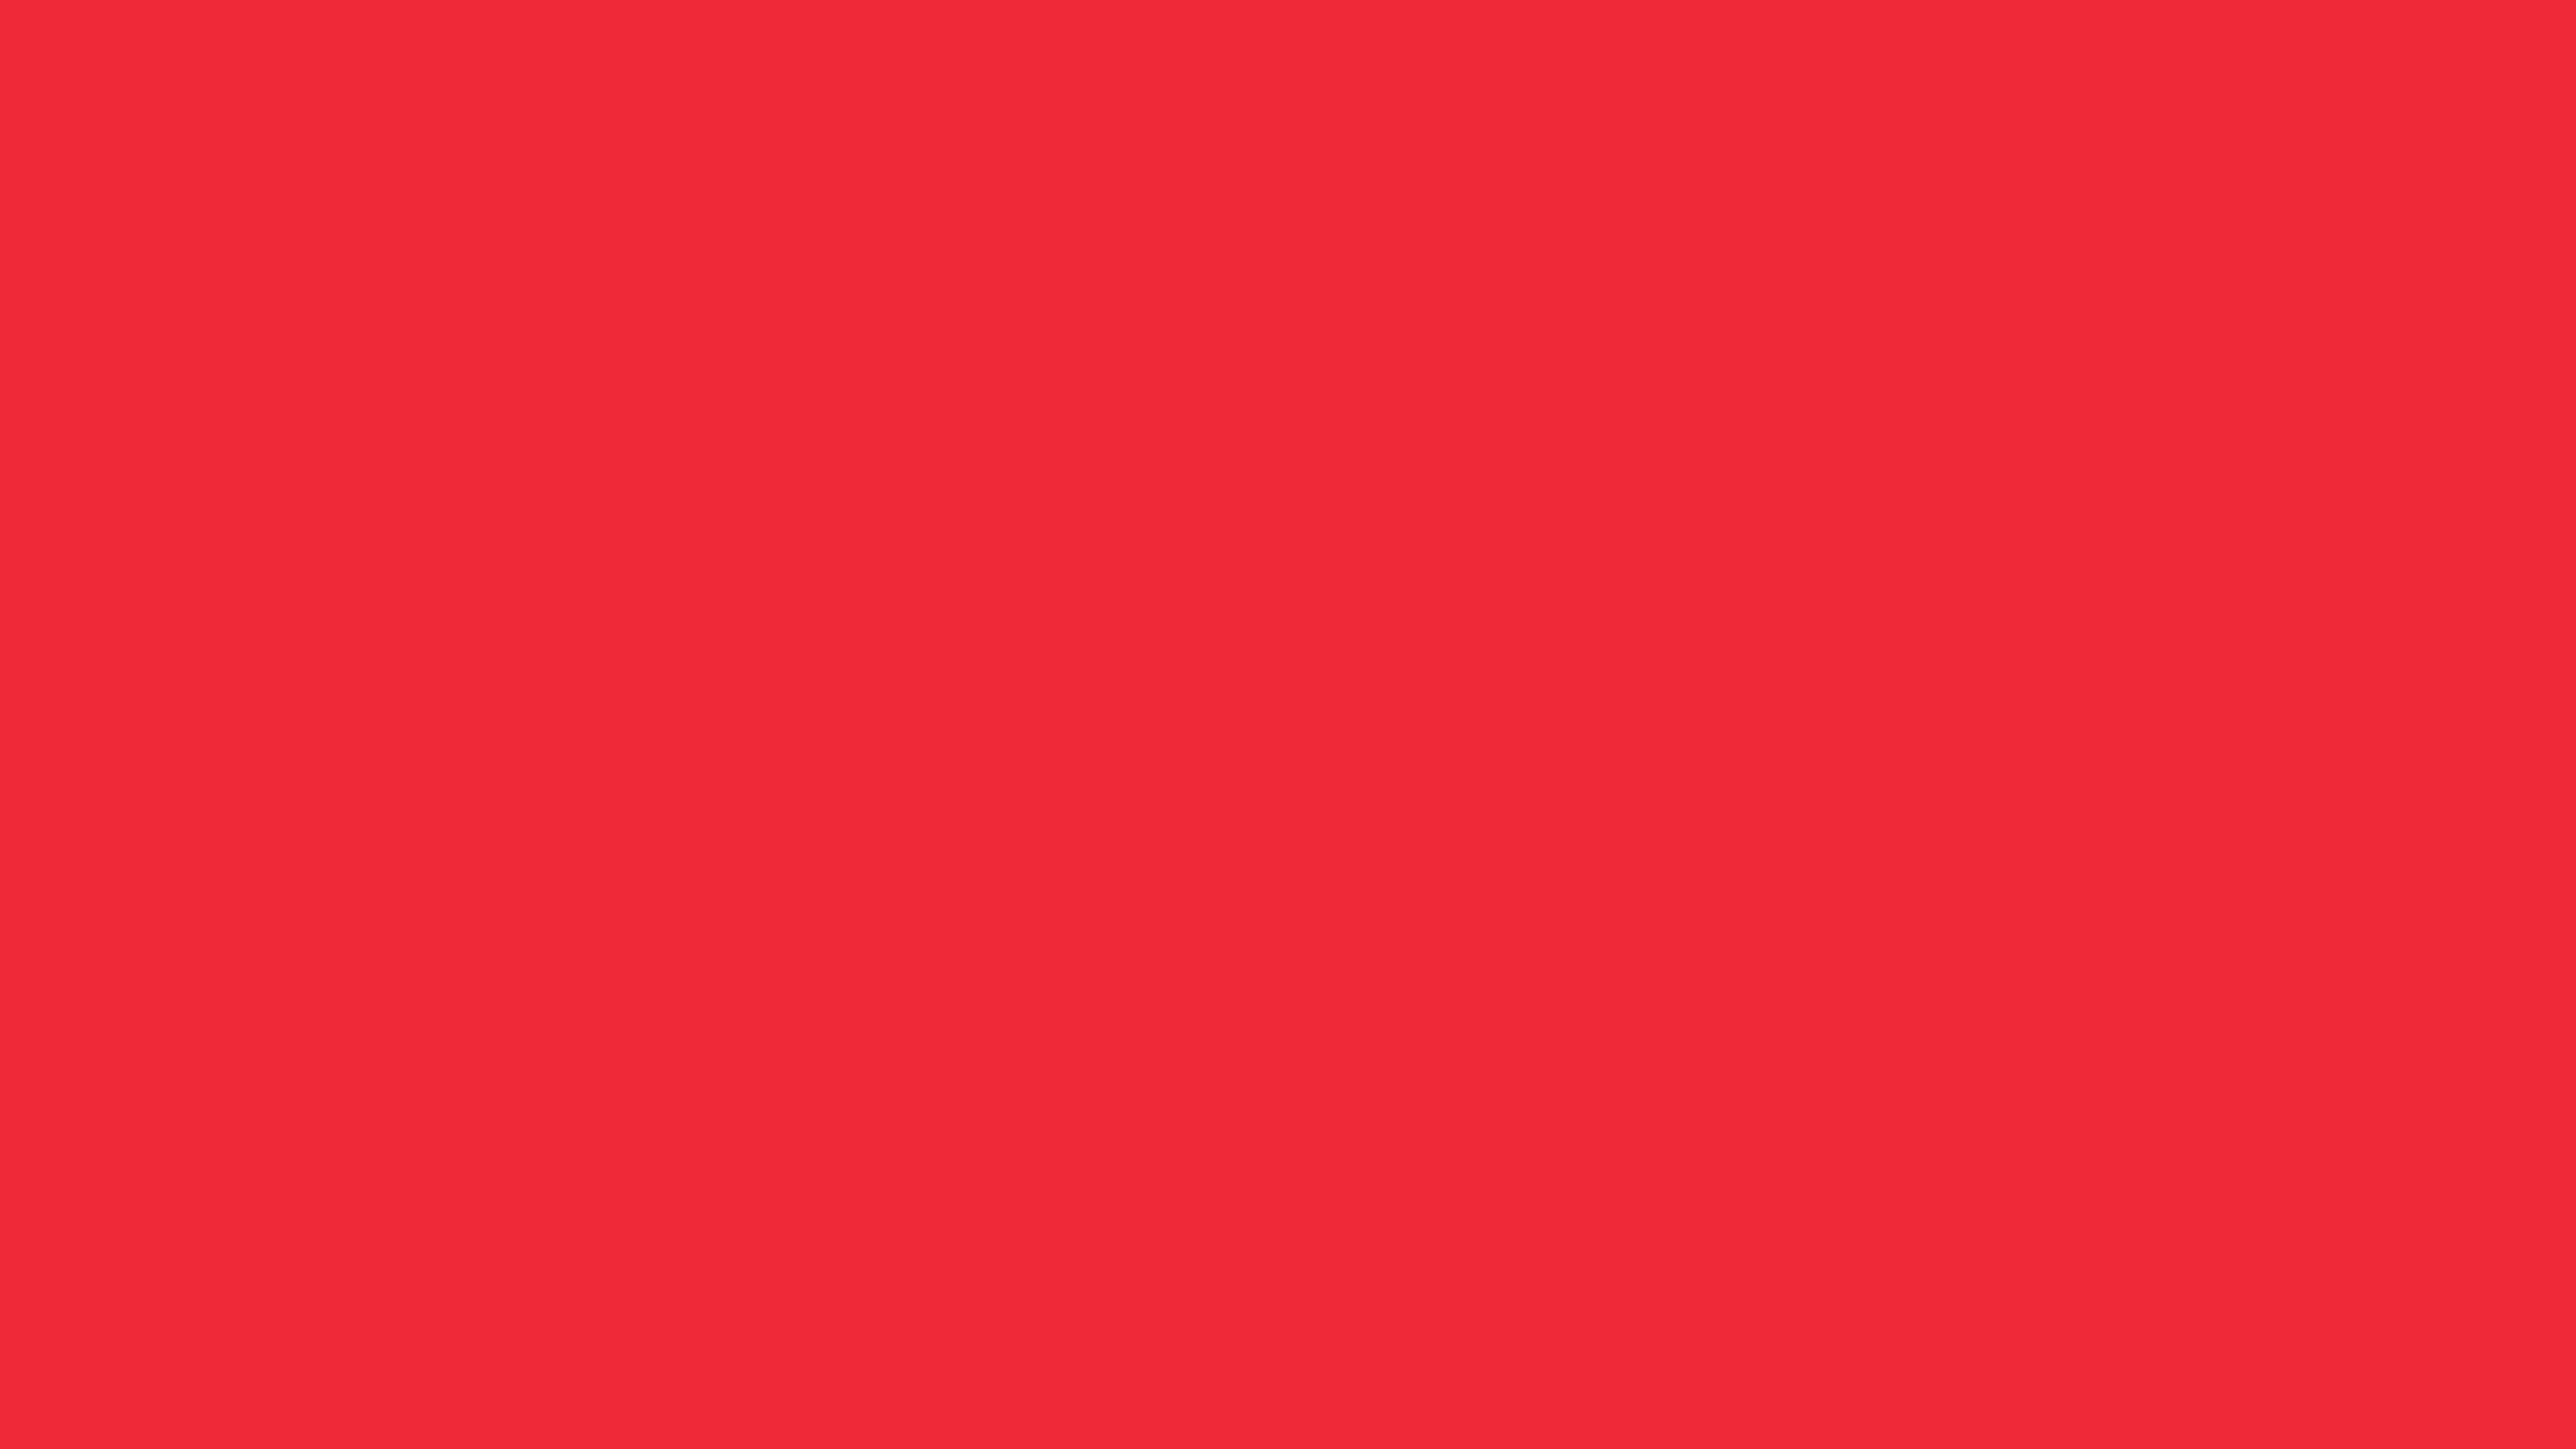 7680x4320 Imperial Red Solid Color Background